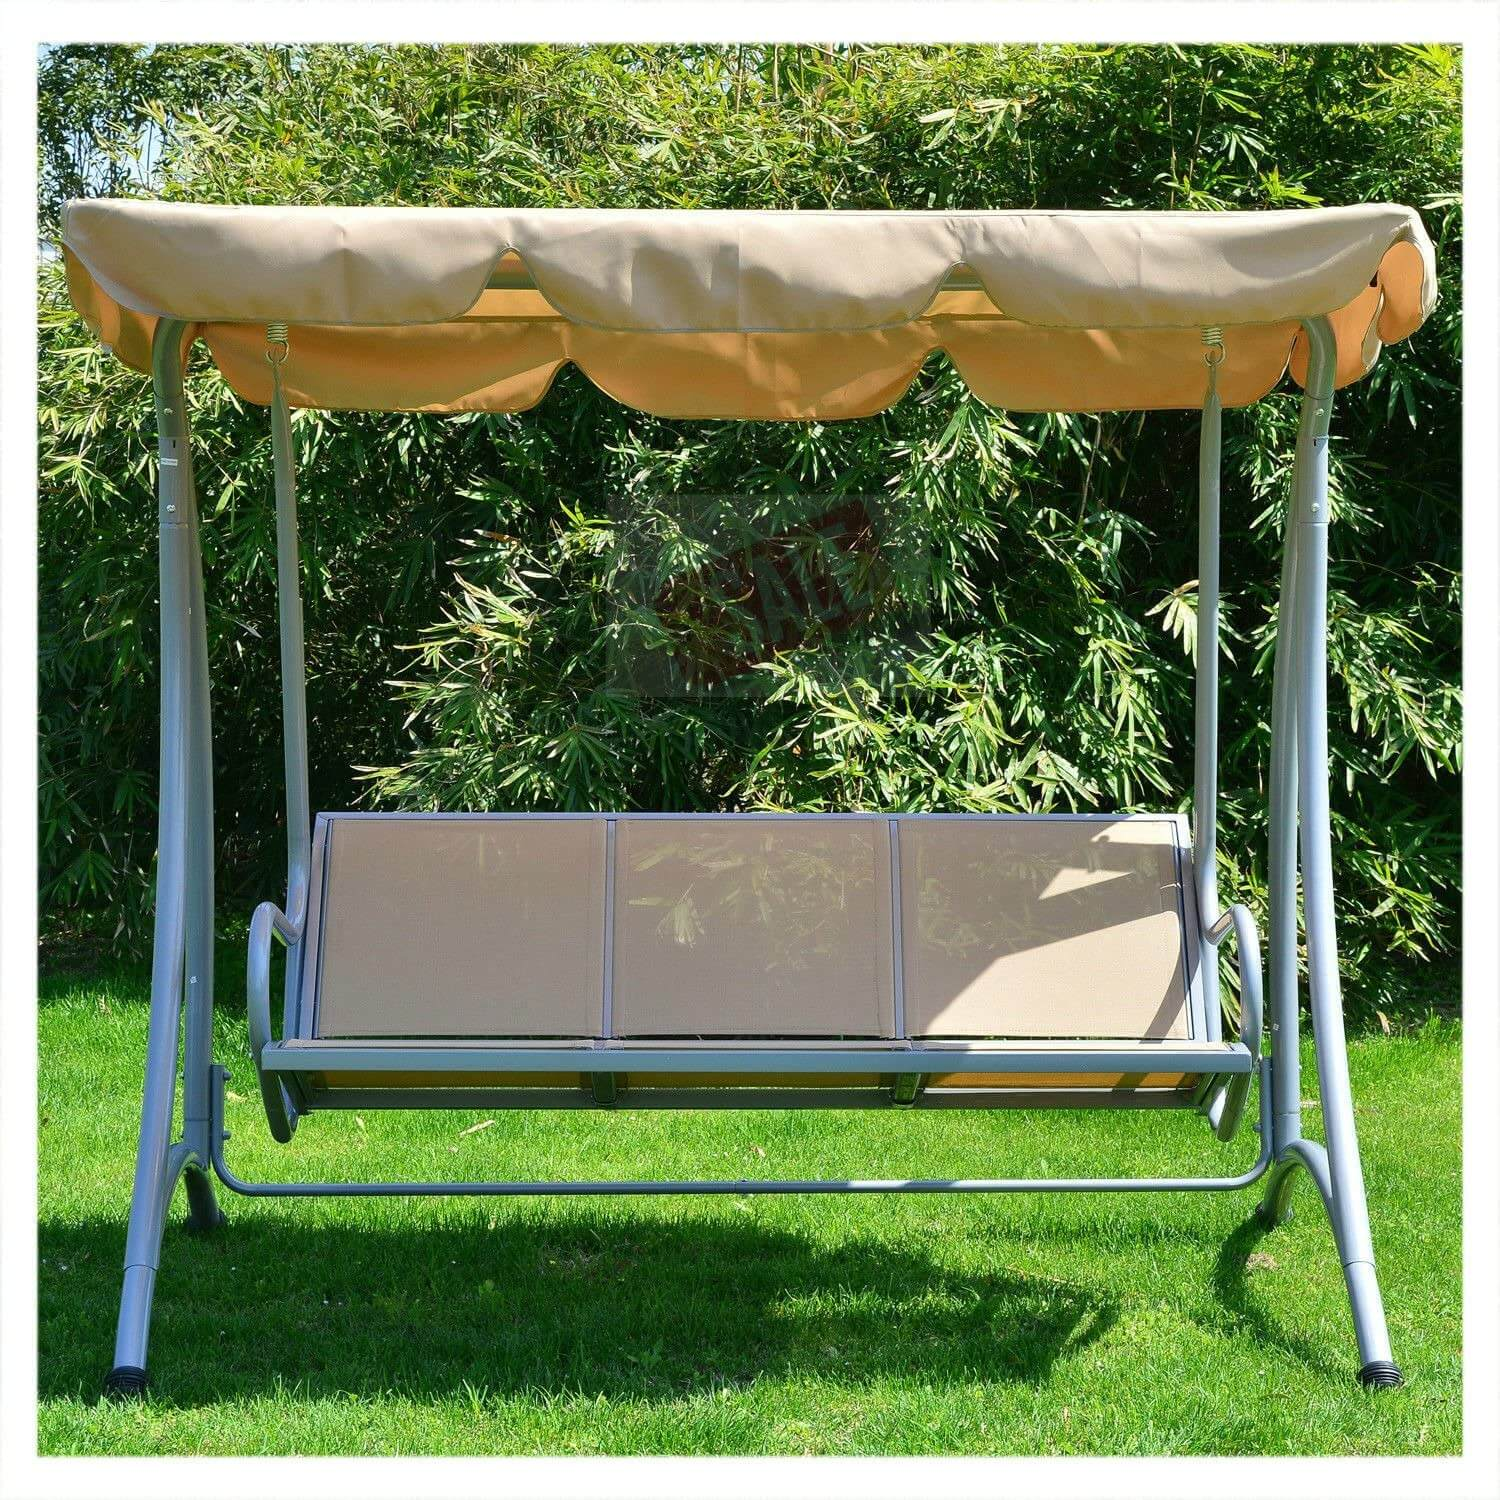 GIANTEX 3 PERSON PATIO ROMANTIC SWING LOVESEAT WITH CANOPY